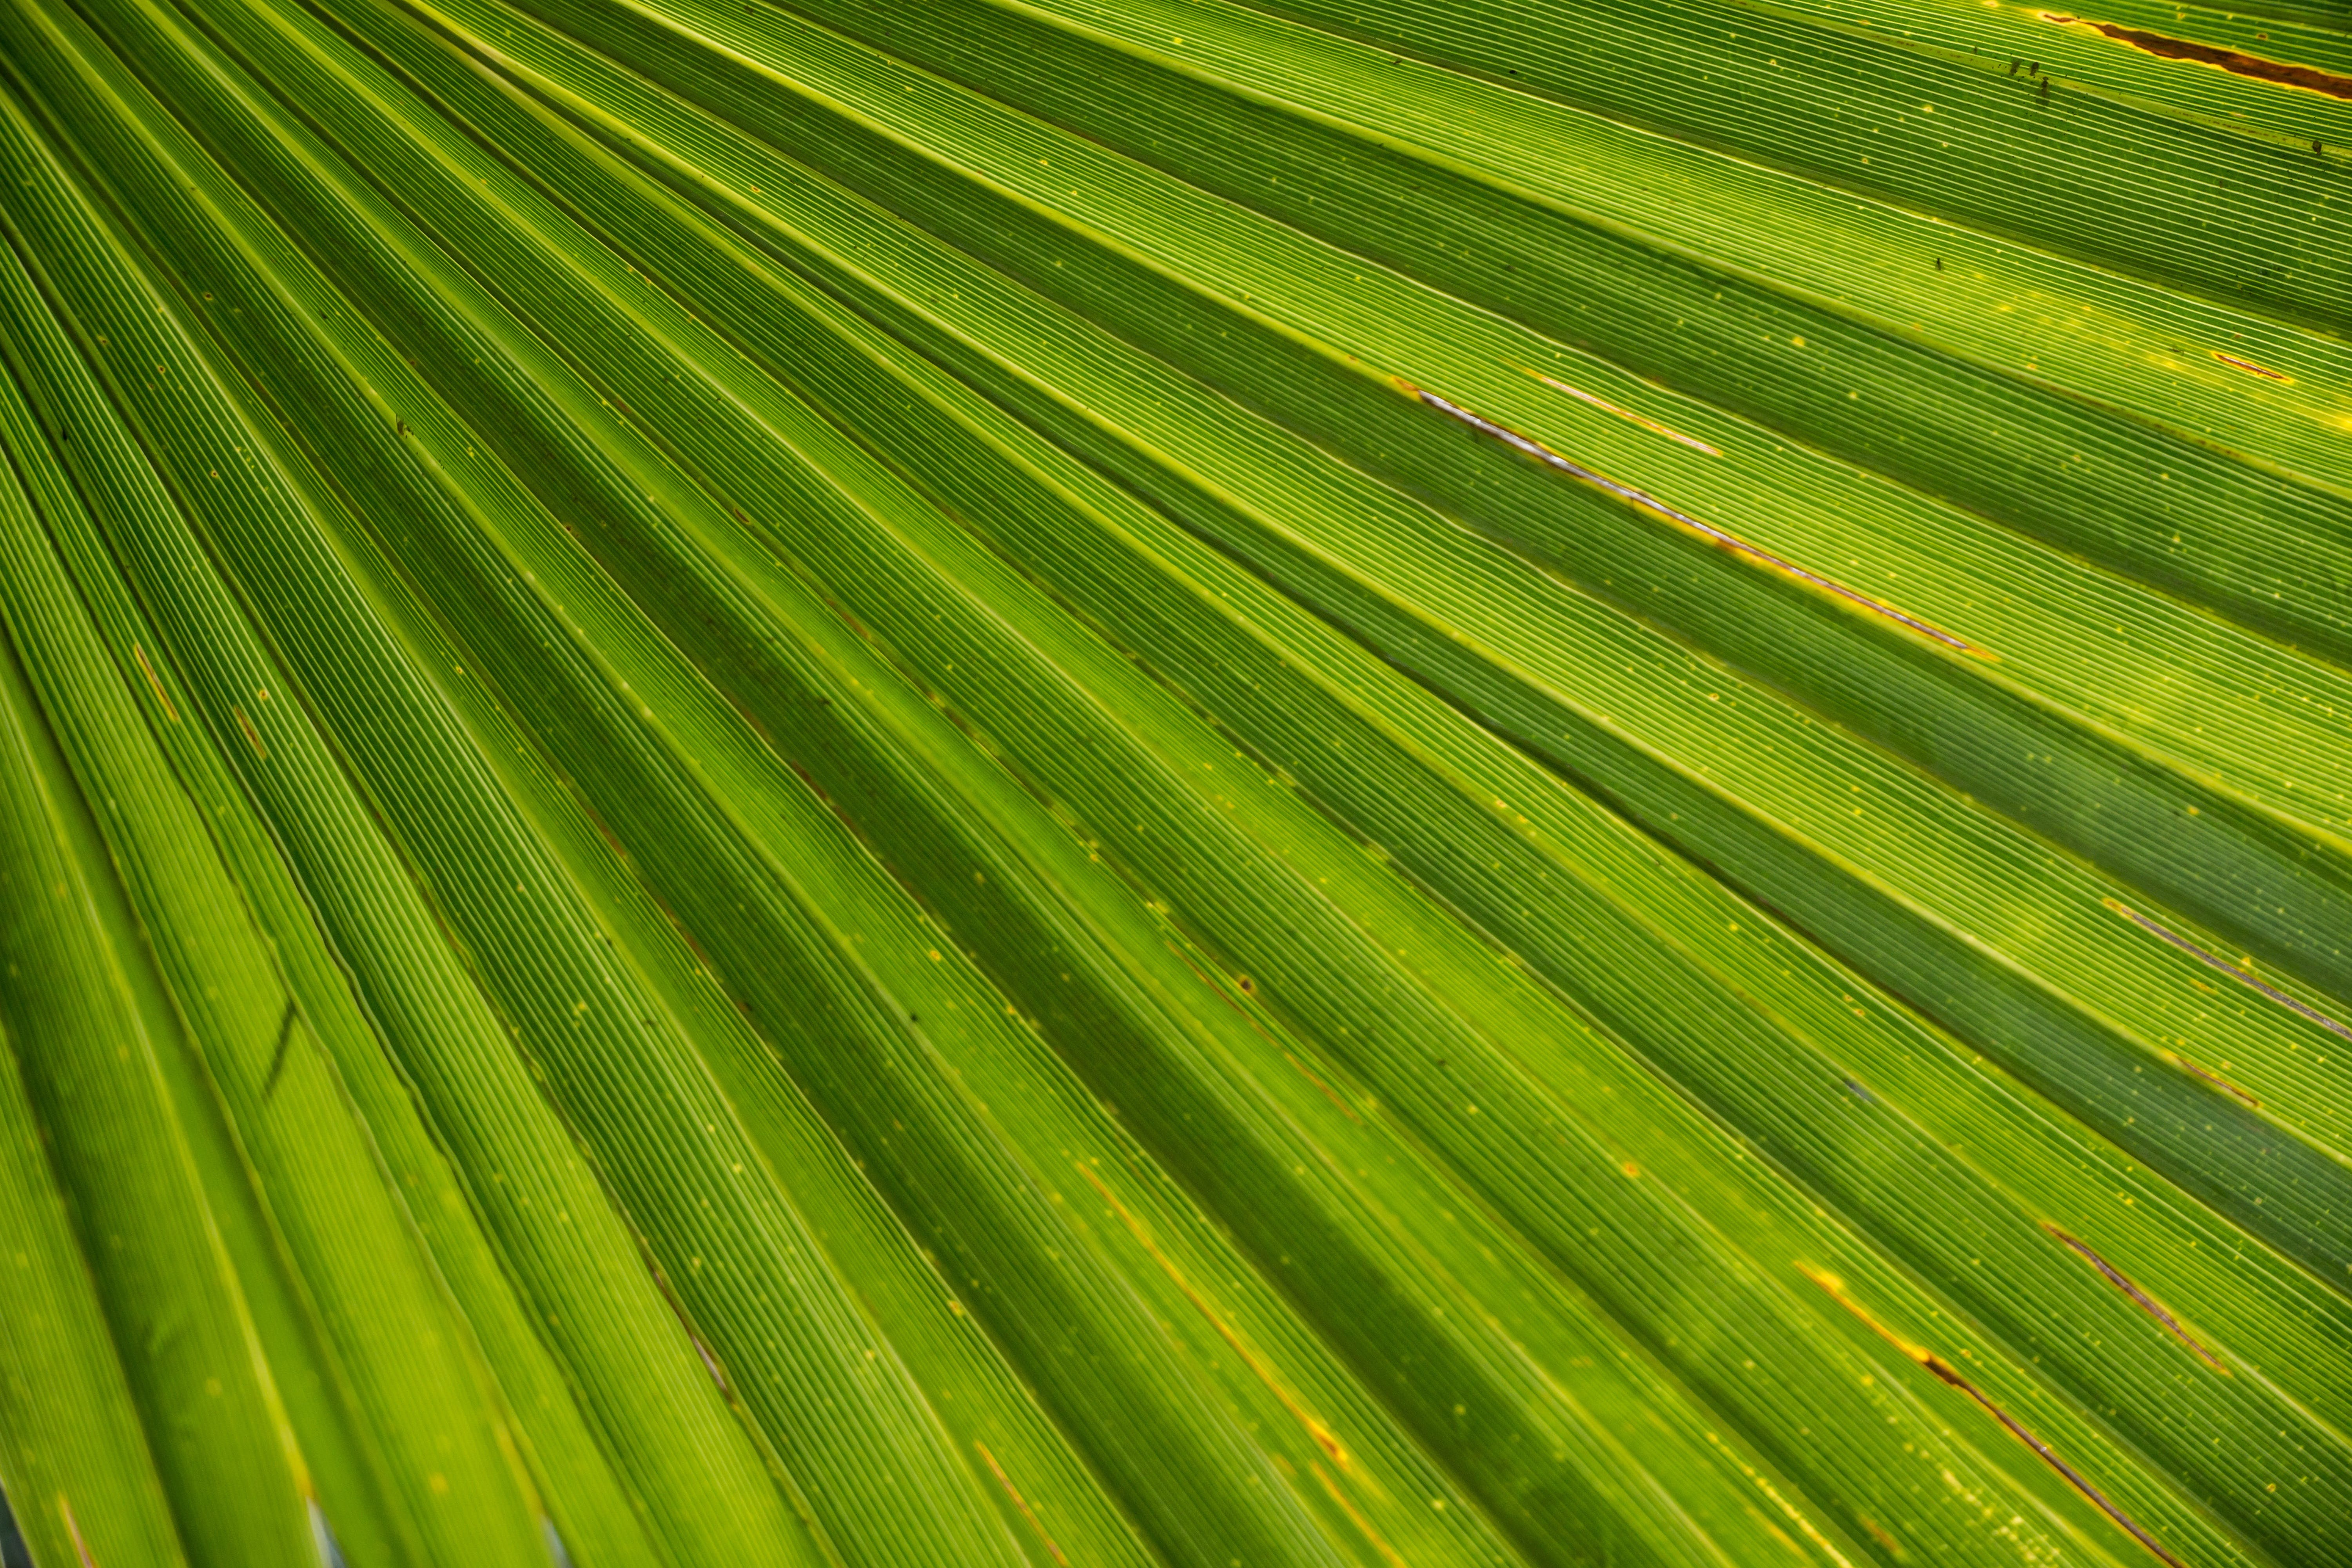 Close-up Photography of Green Fan Palm Leaf